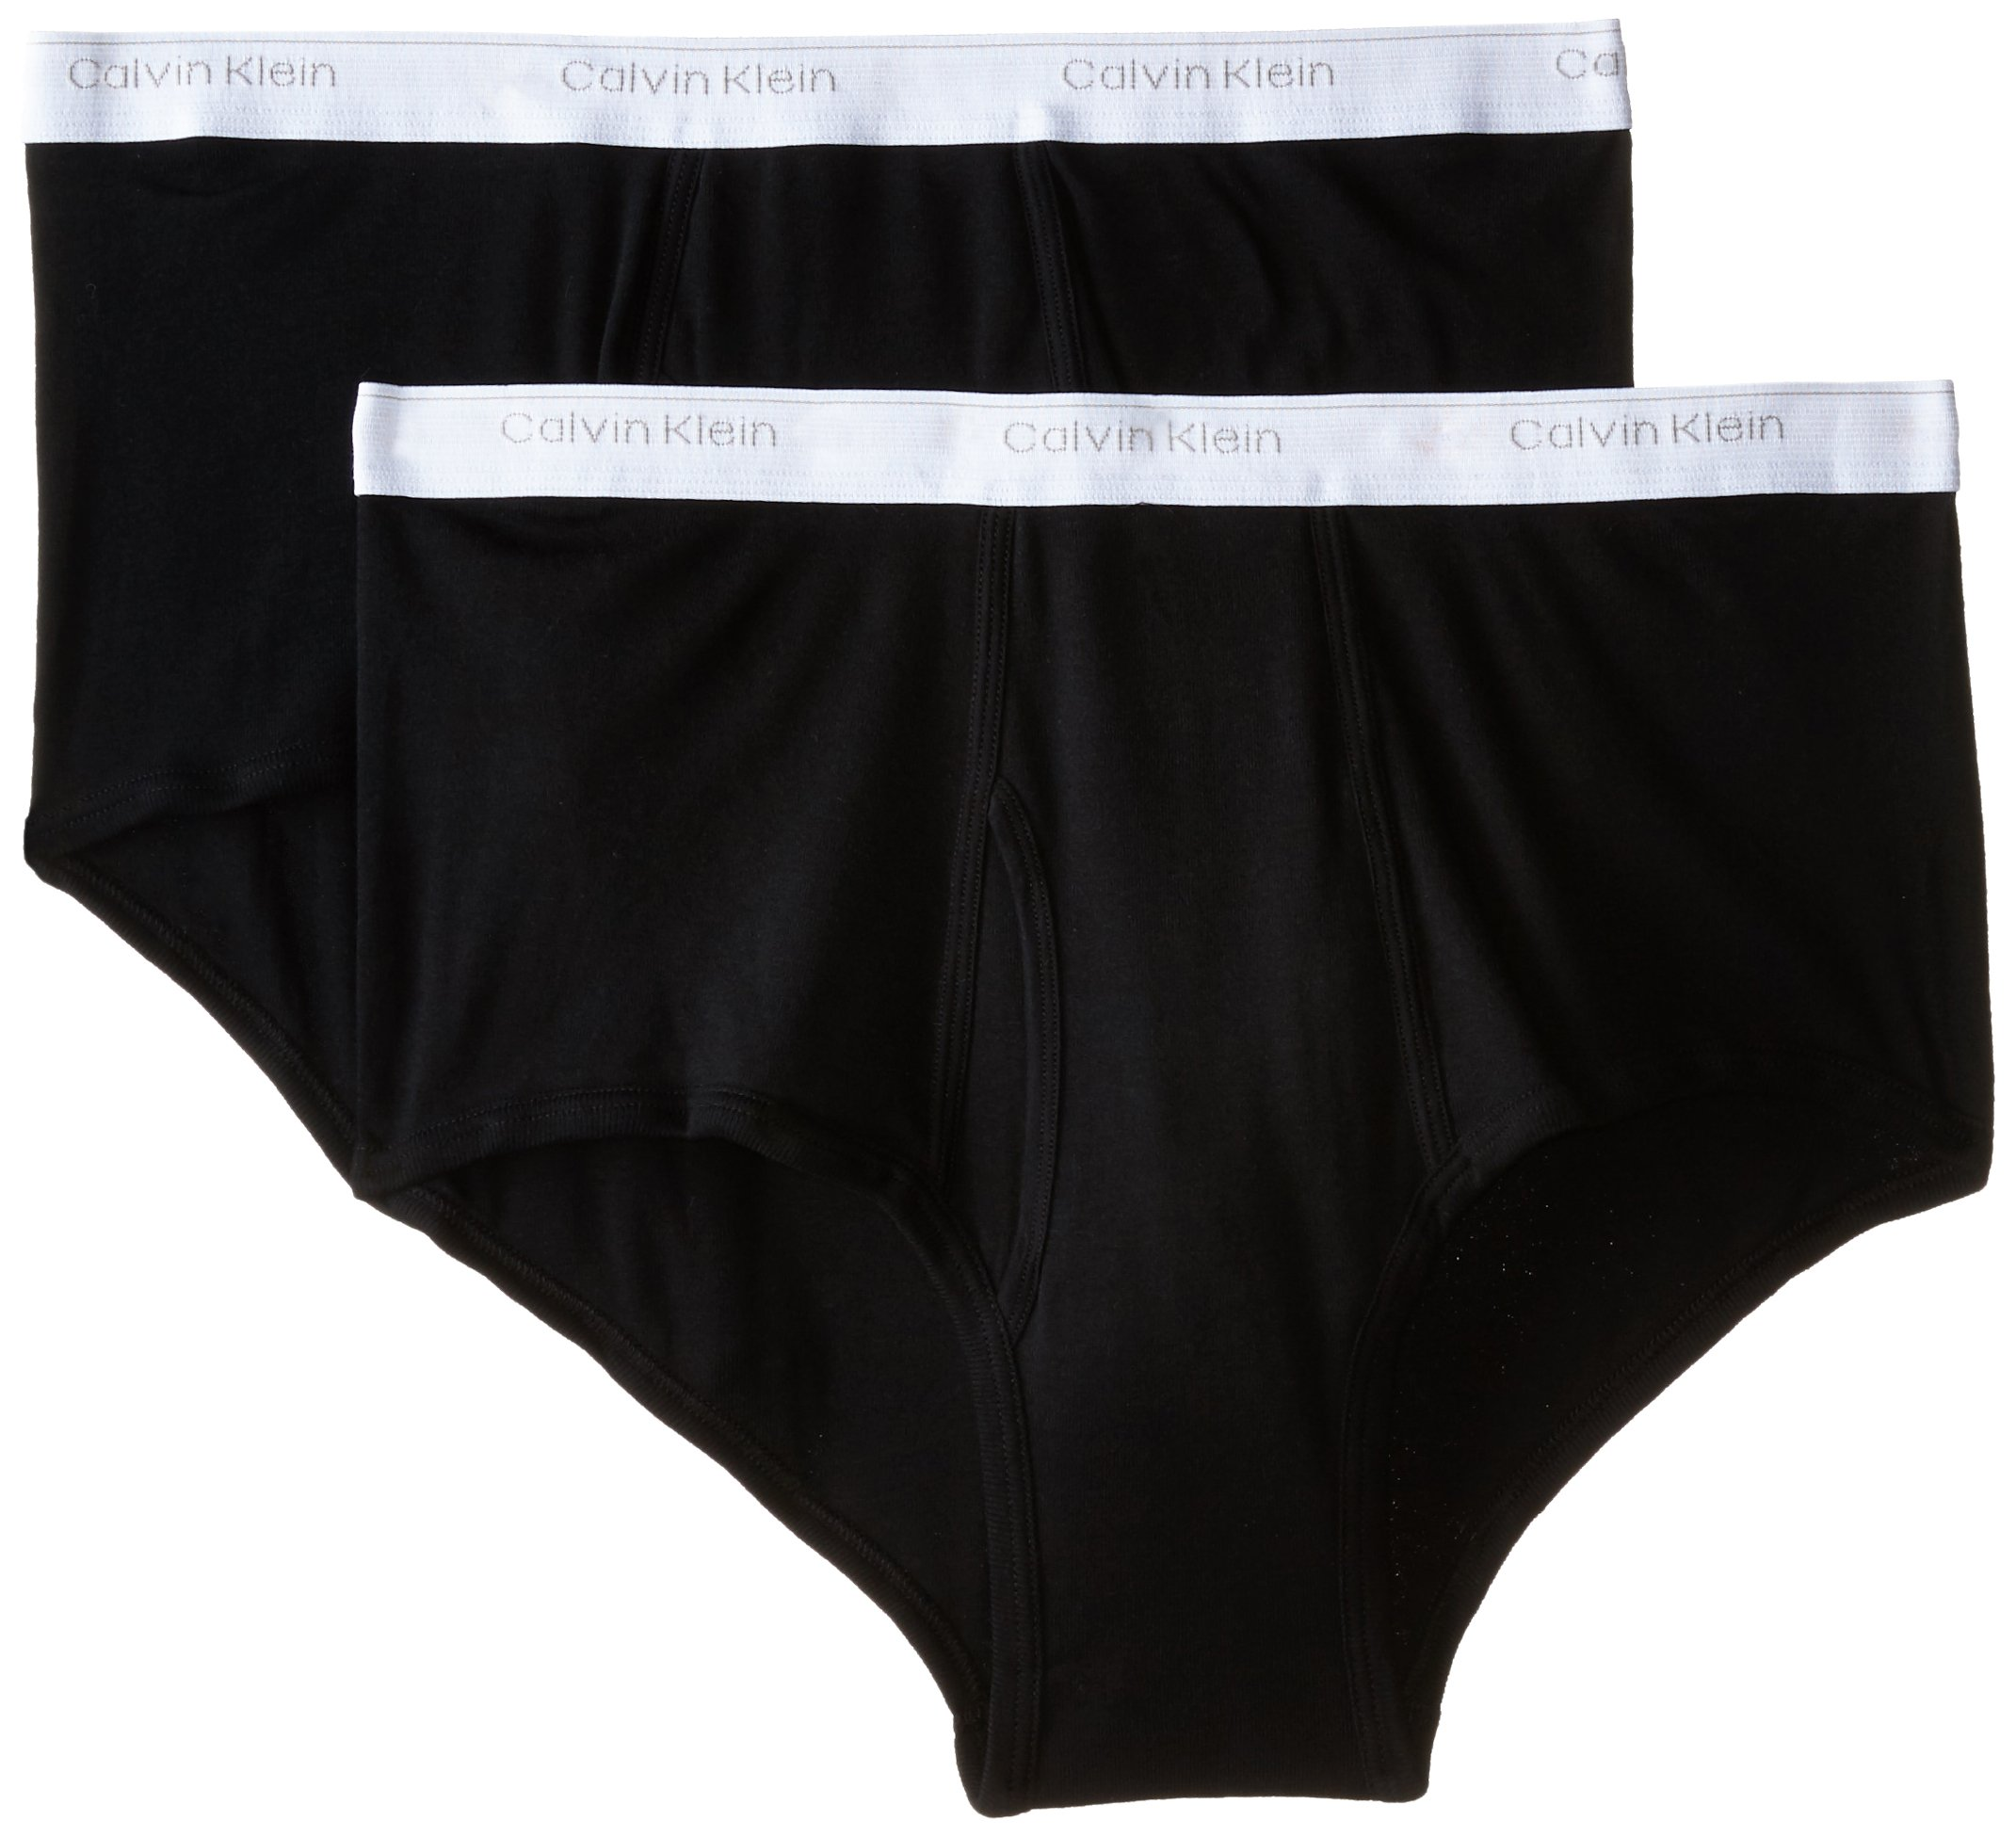 Calvin Klein Men's Big and Tall Cotton Classics 2 Pack Briefs, Black 58 by Calvin Klein (Image #1)